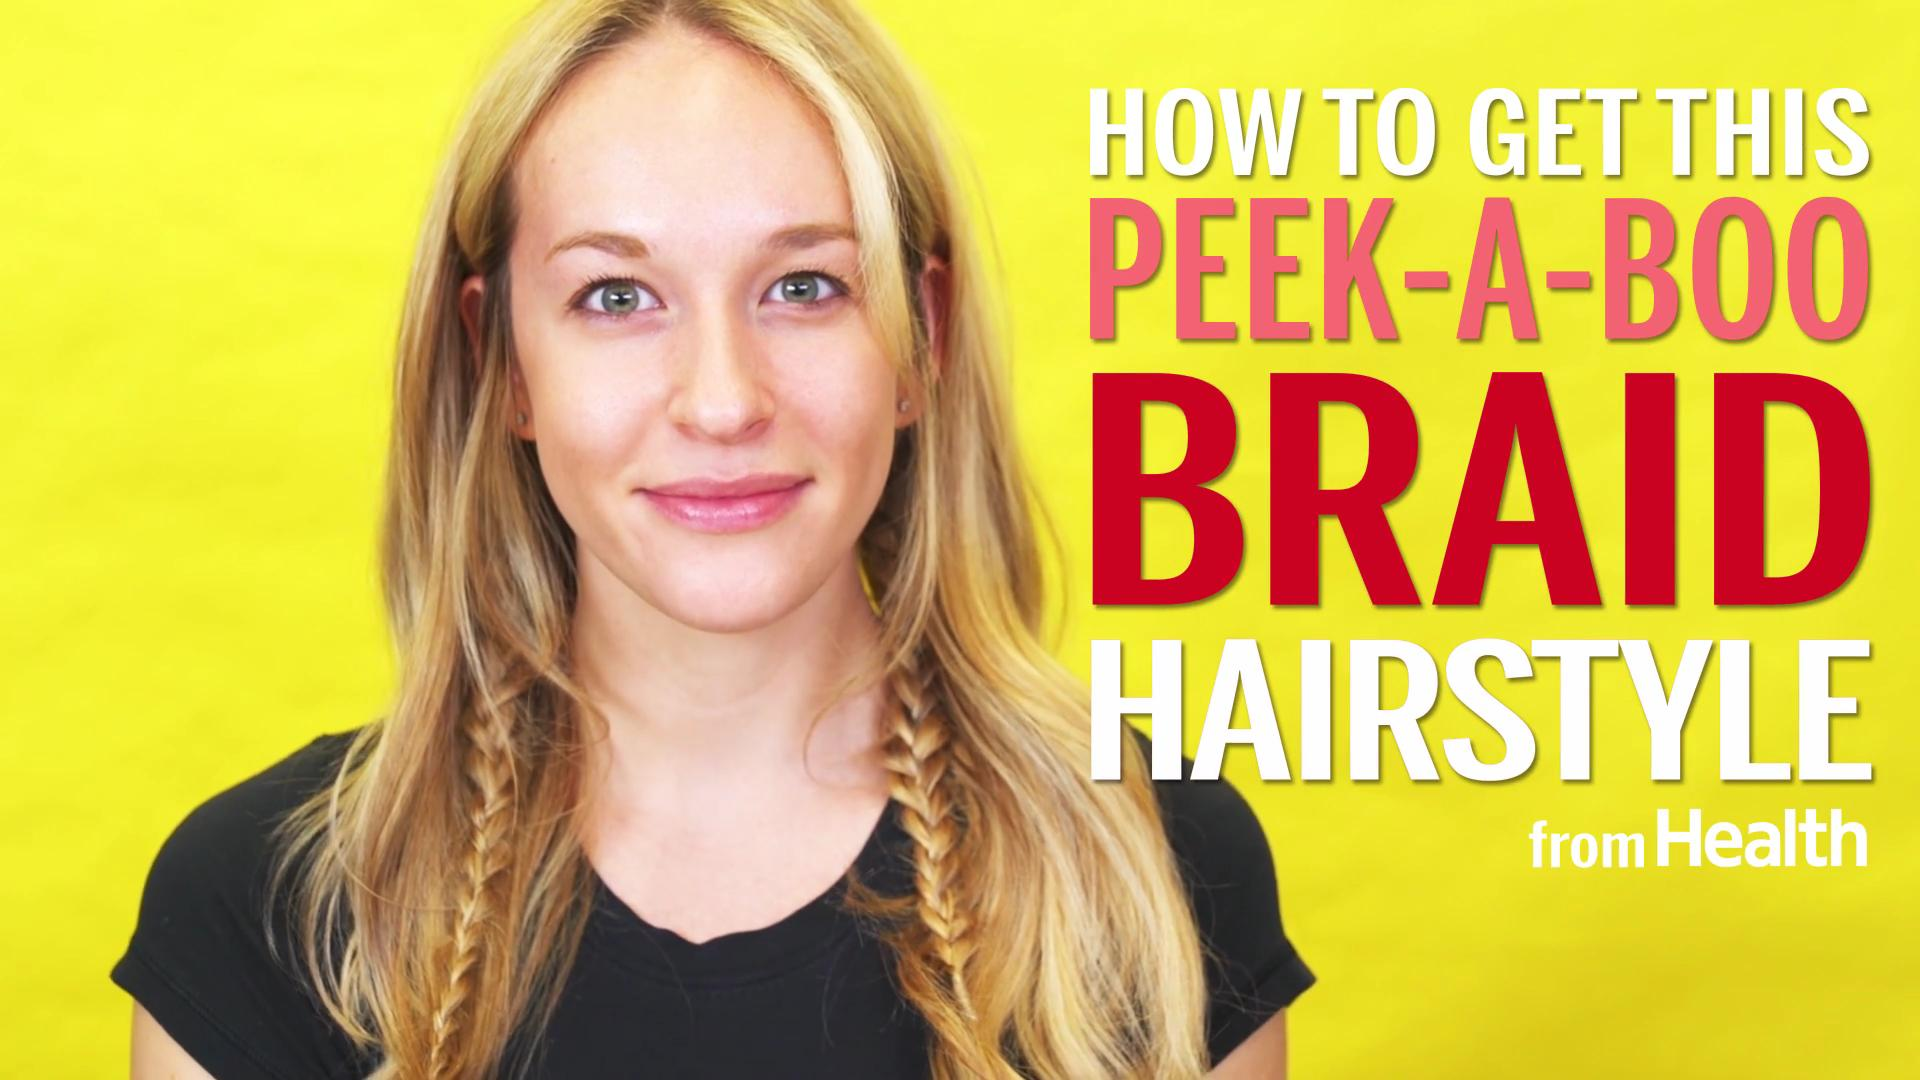 How to do a peek-a-boo braid hairstyle